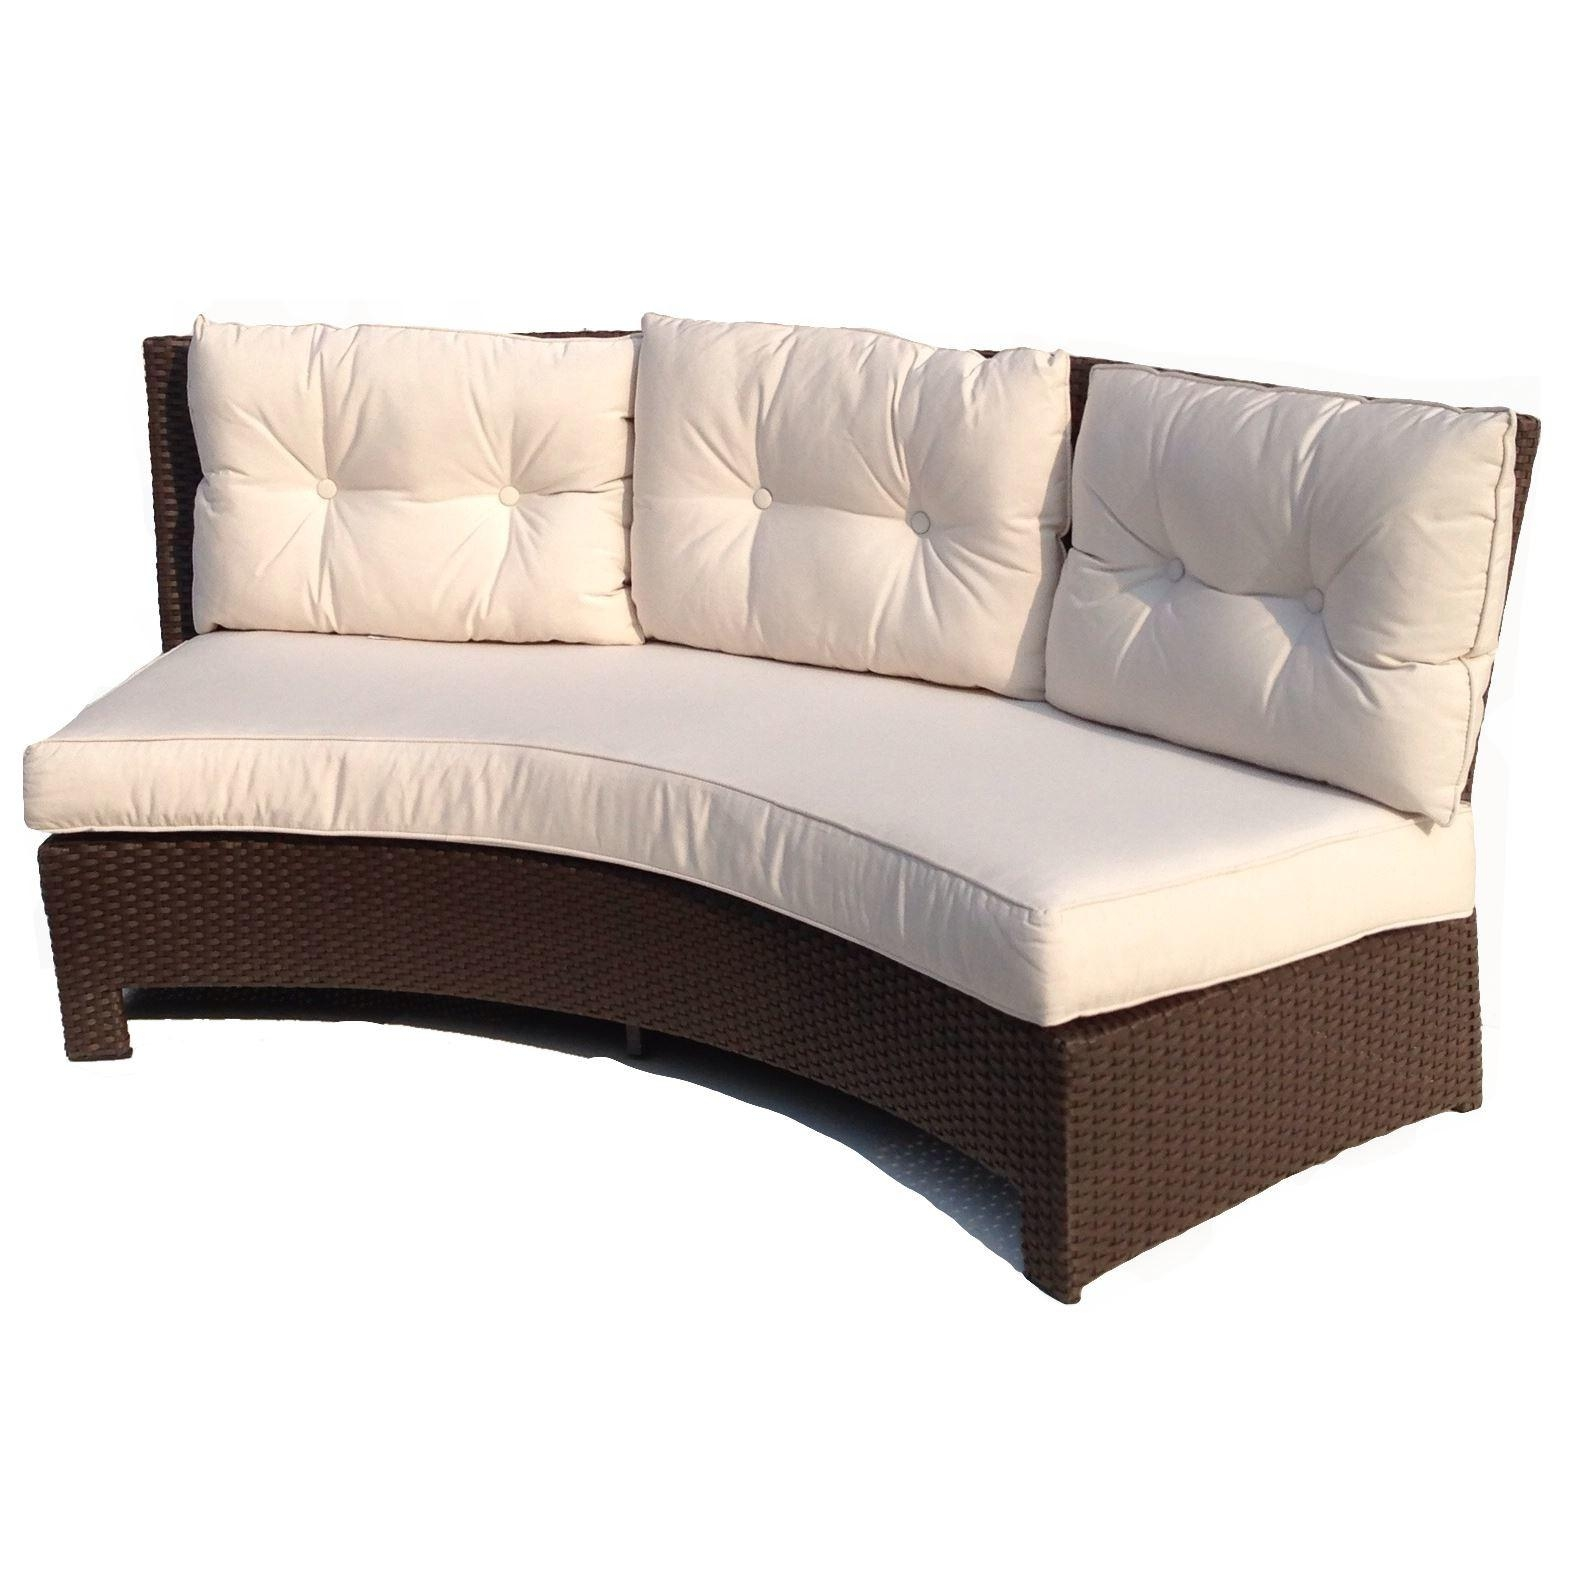 Bench Cushion Sofa Cozy Bay Havana 2 Seater Sofa With Seat Pad Intended For Bench Cushion Sofas (Image 4 of 20)